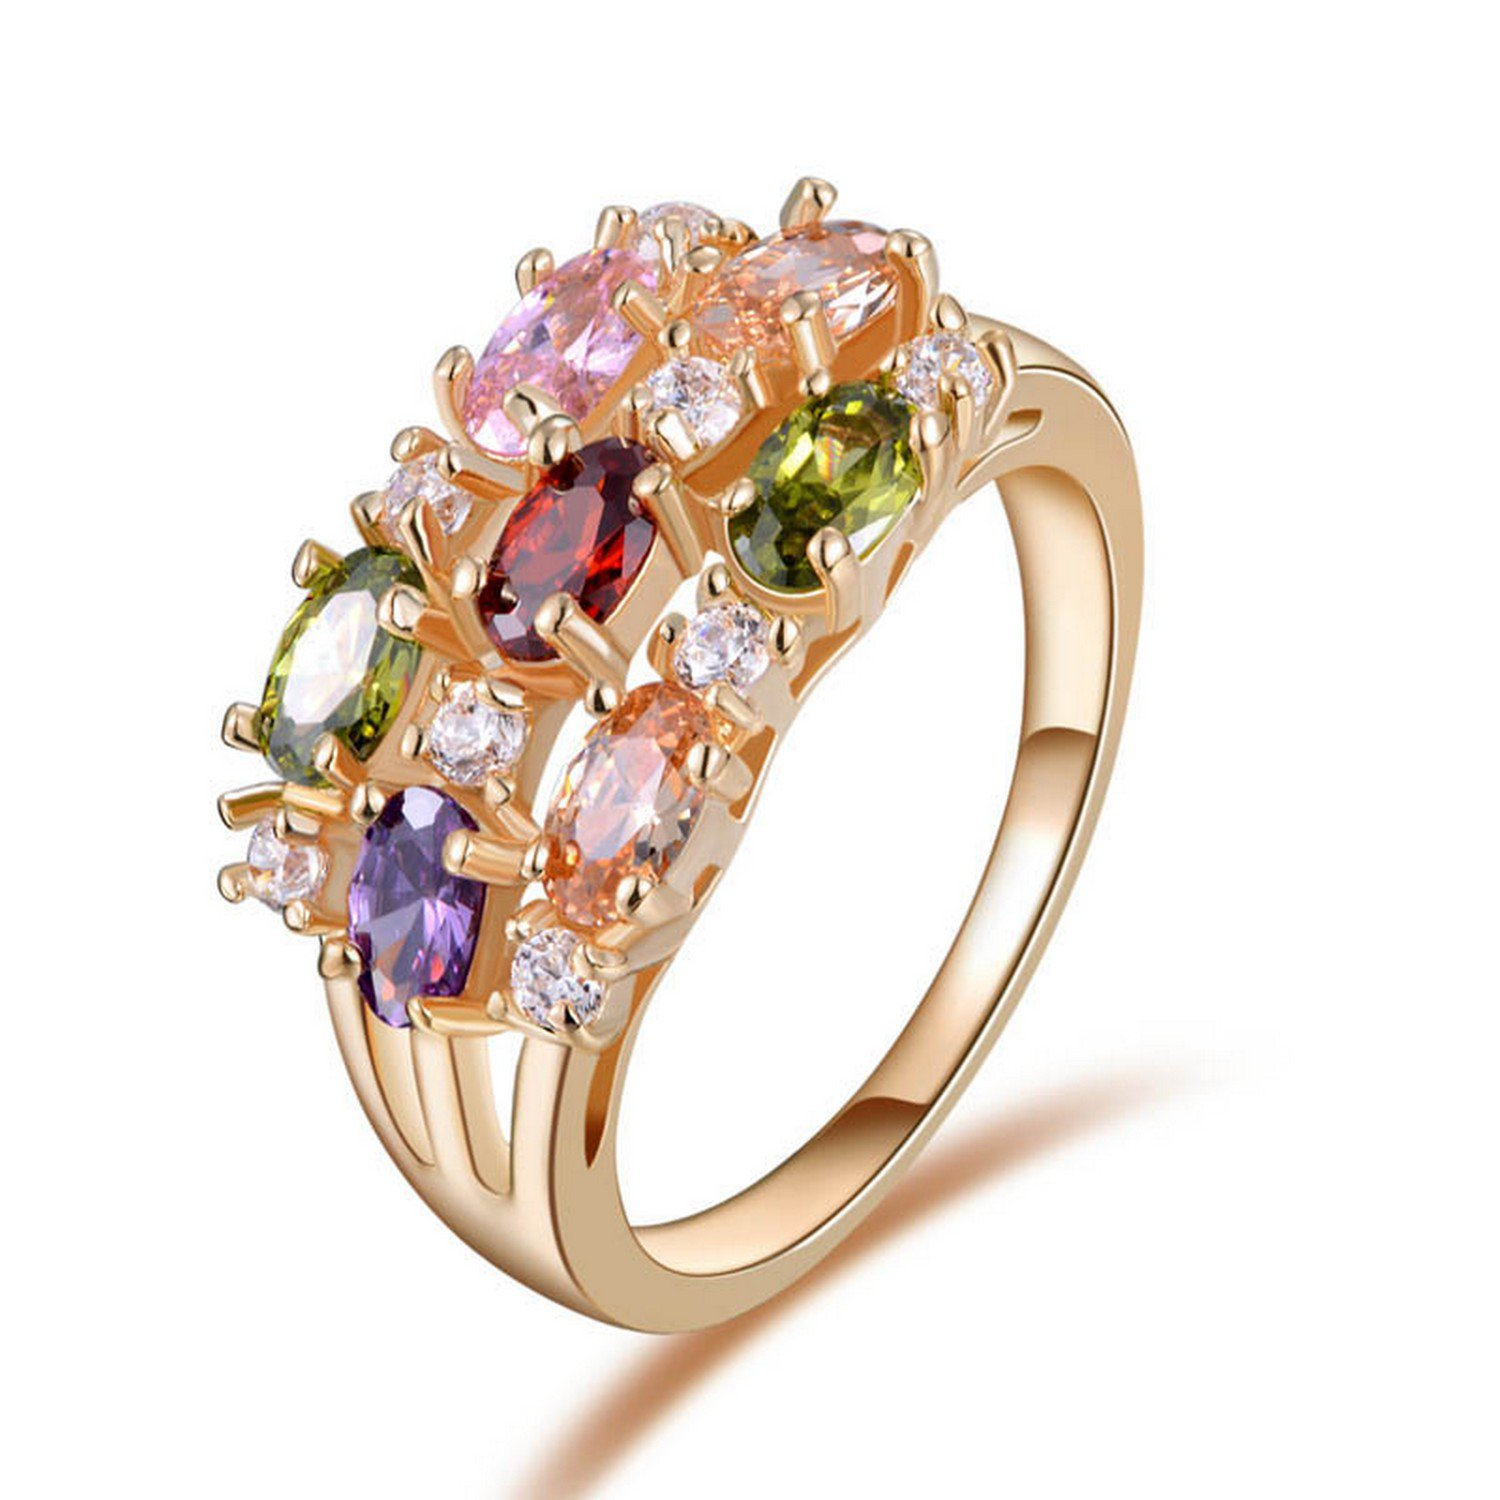 Dudee Luxury Rose Gold Color Zircon Paved cz engagement ring fashionable rings